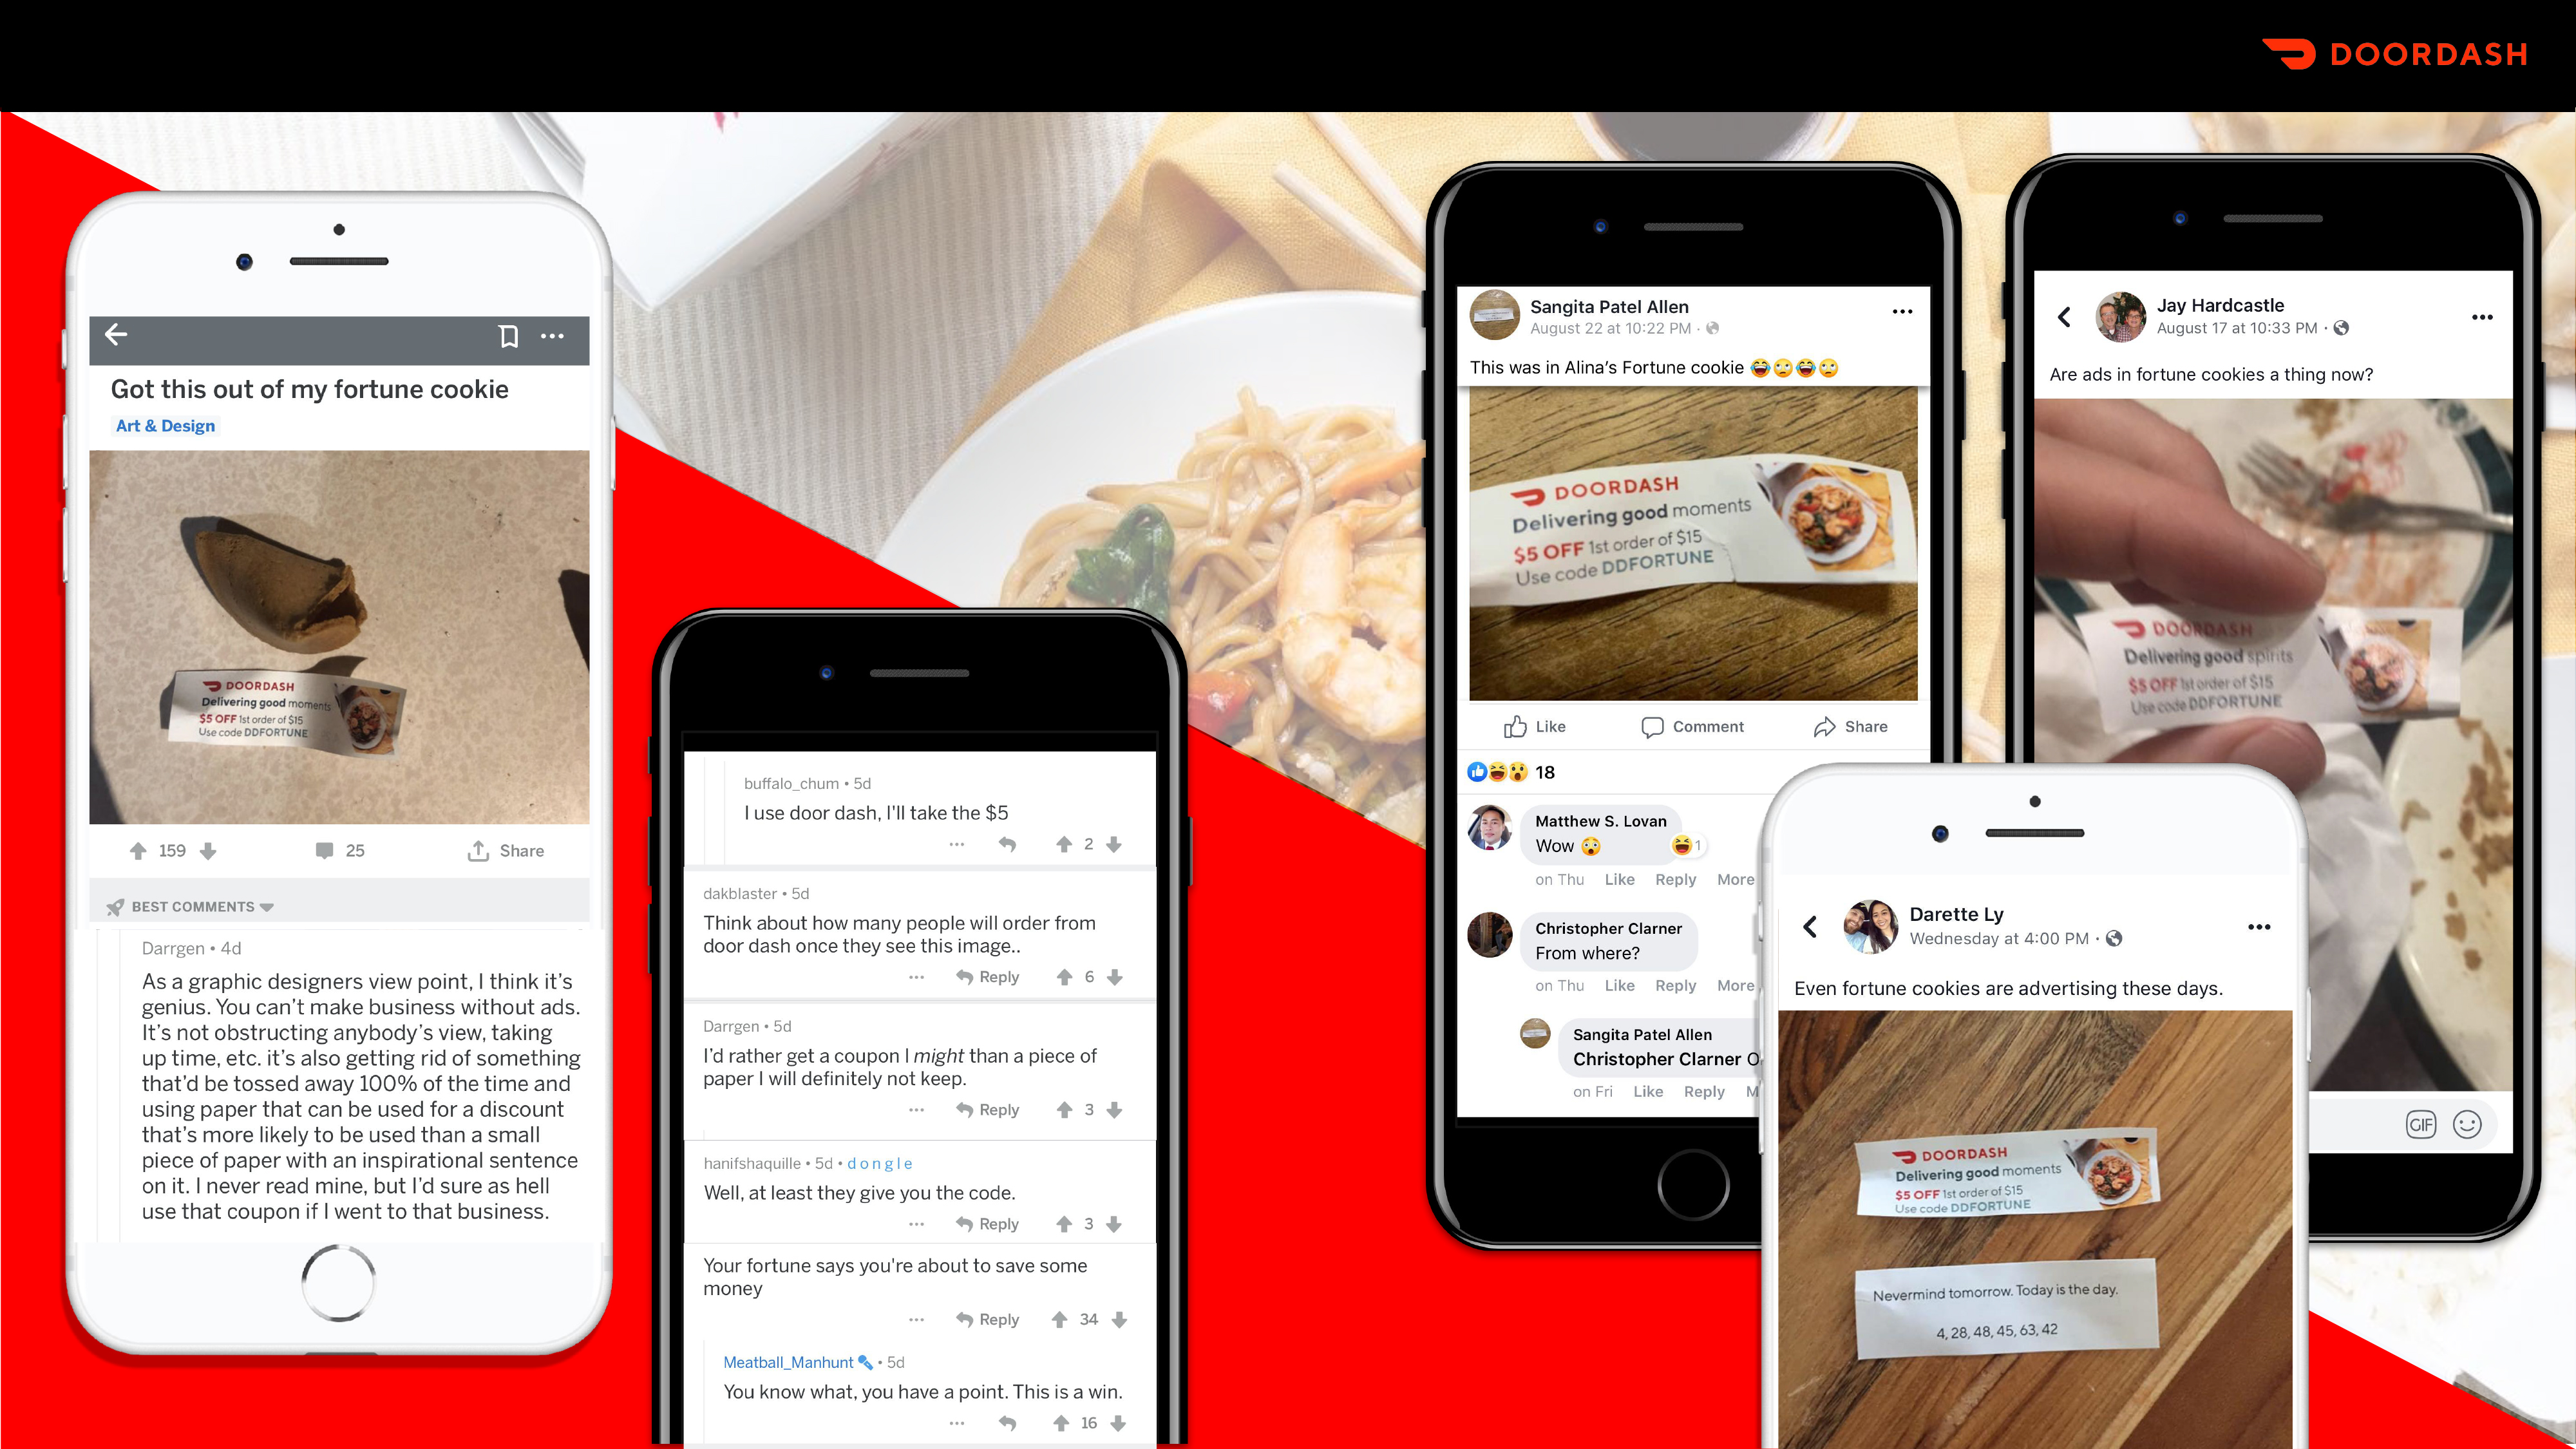 DoorDash Creates a Buzz with Fortune Cookies